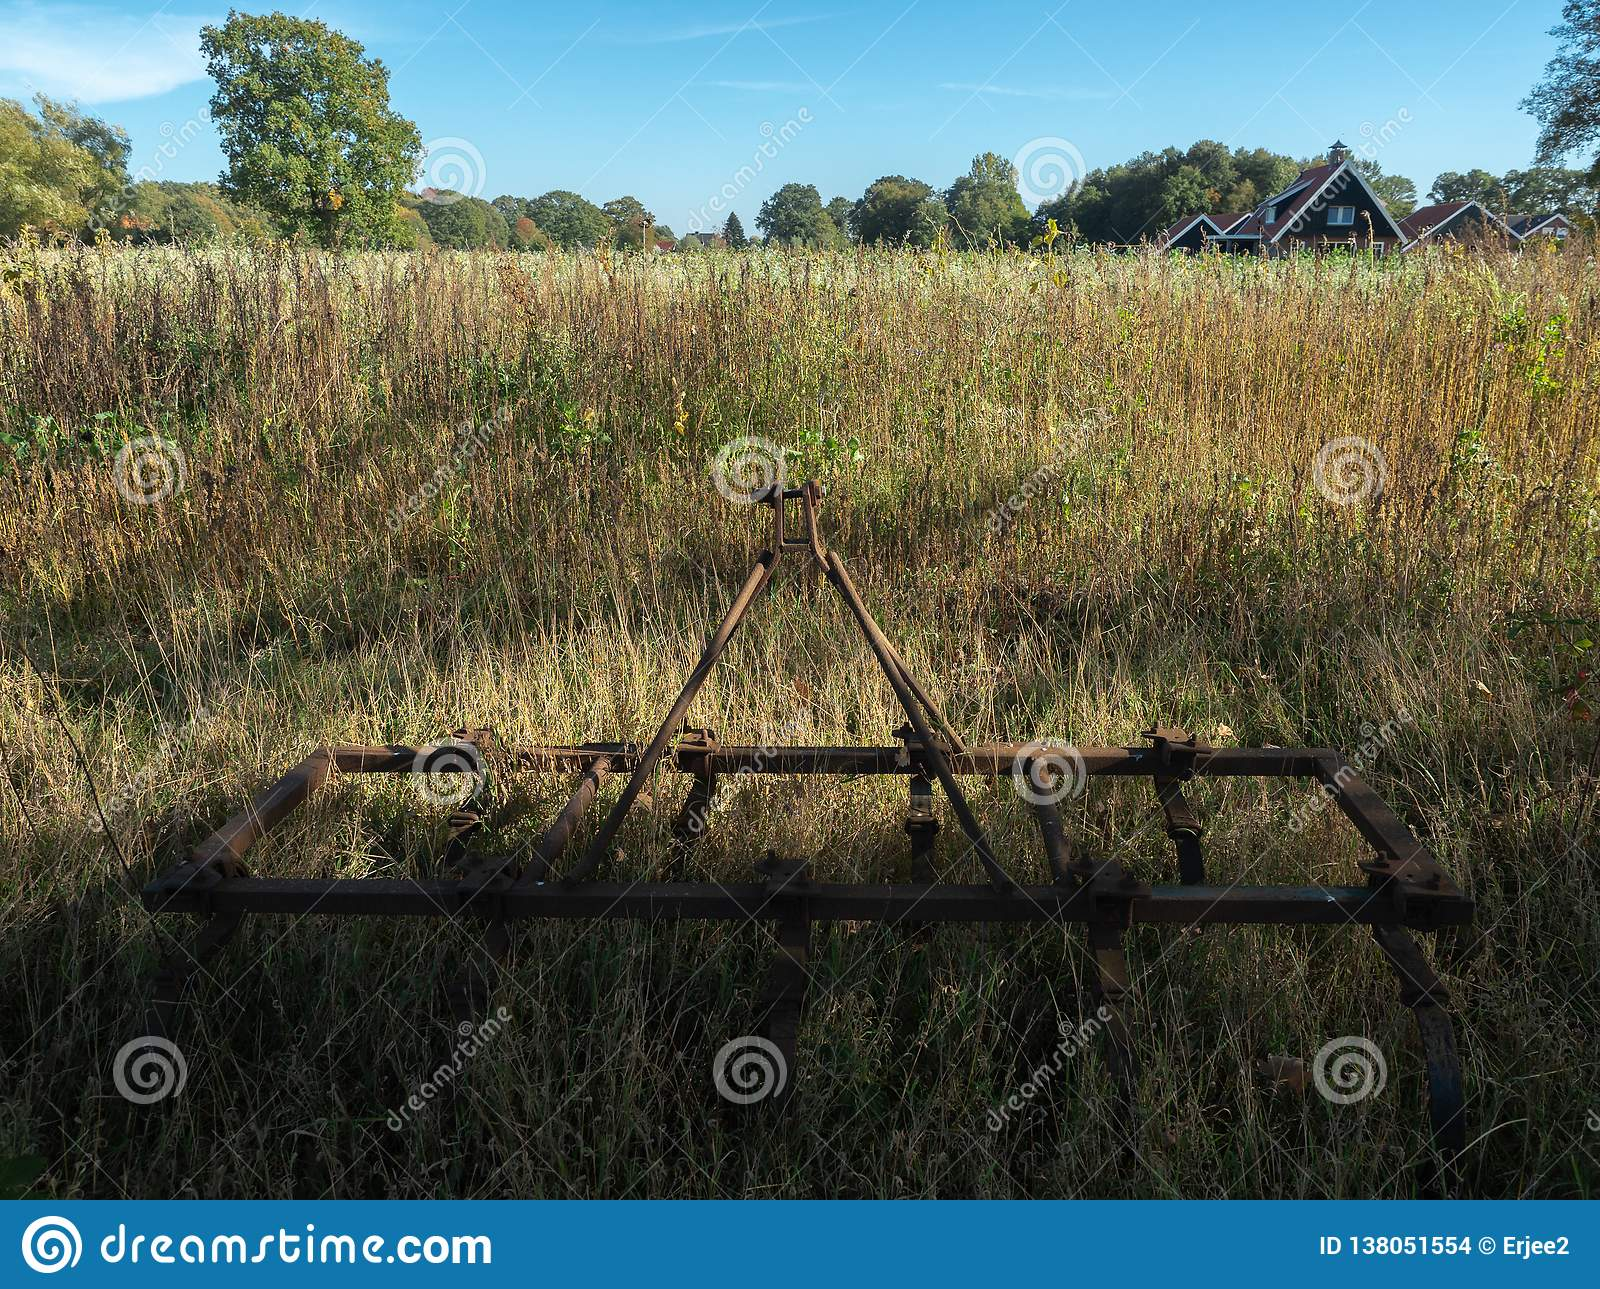 Rusty, old farm equipment. His last resting place.